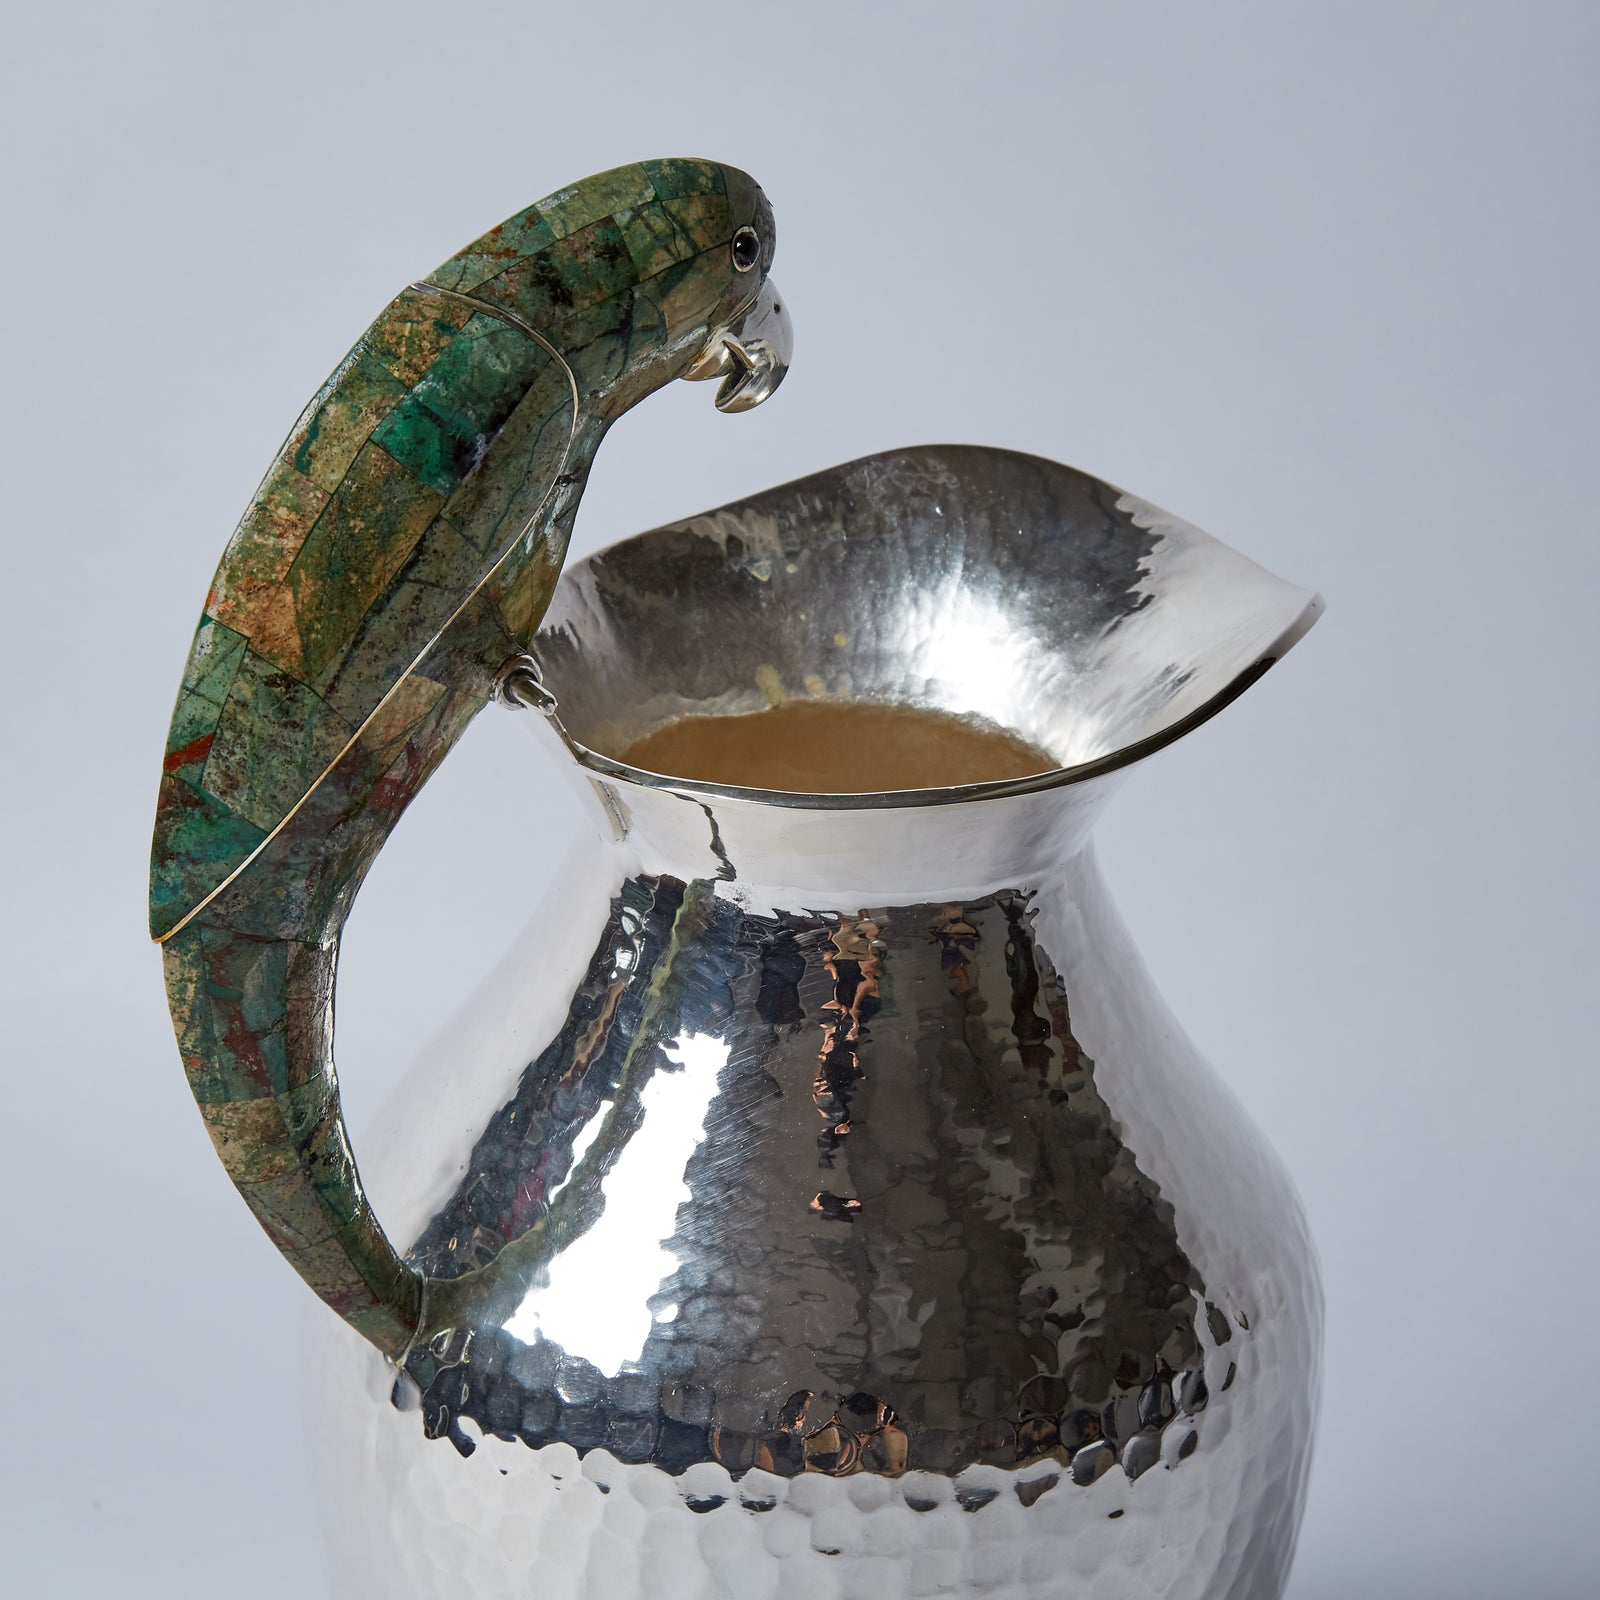 Jarra, Green Parrot, 3L, Hammered